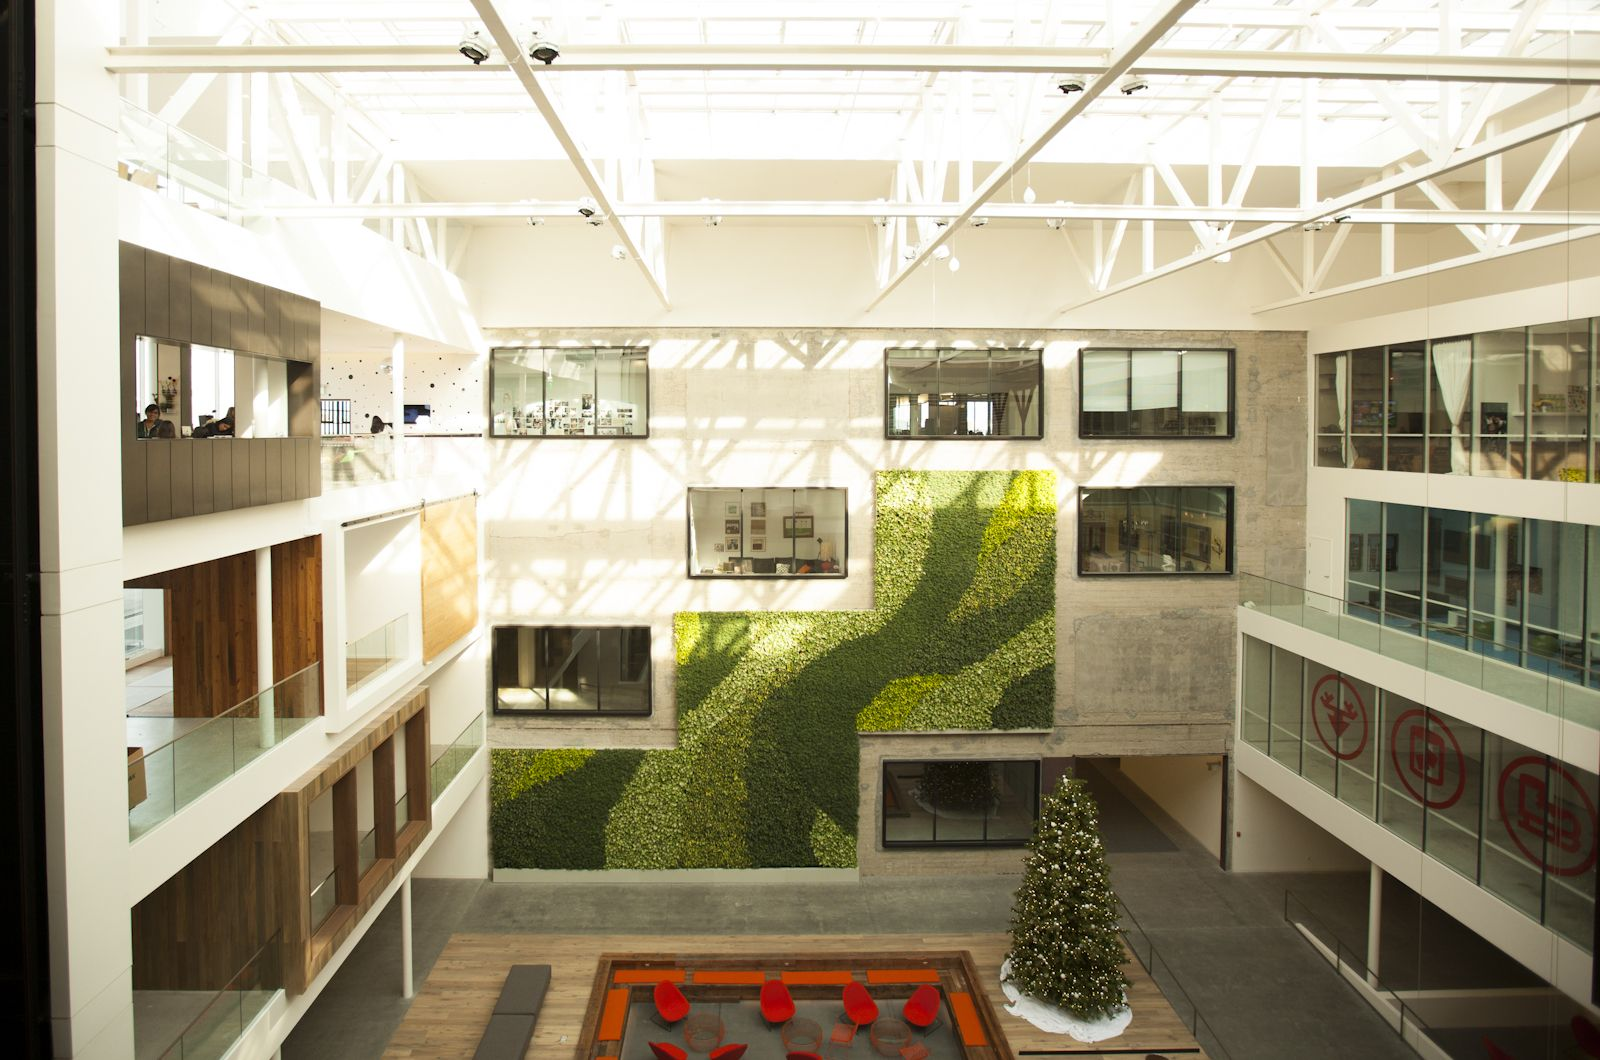 1000 images about airbnb hq on pinterest san francisco offices and business design airbnb office design san francisco